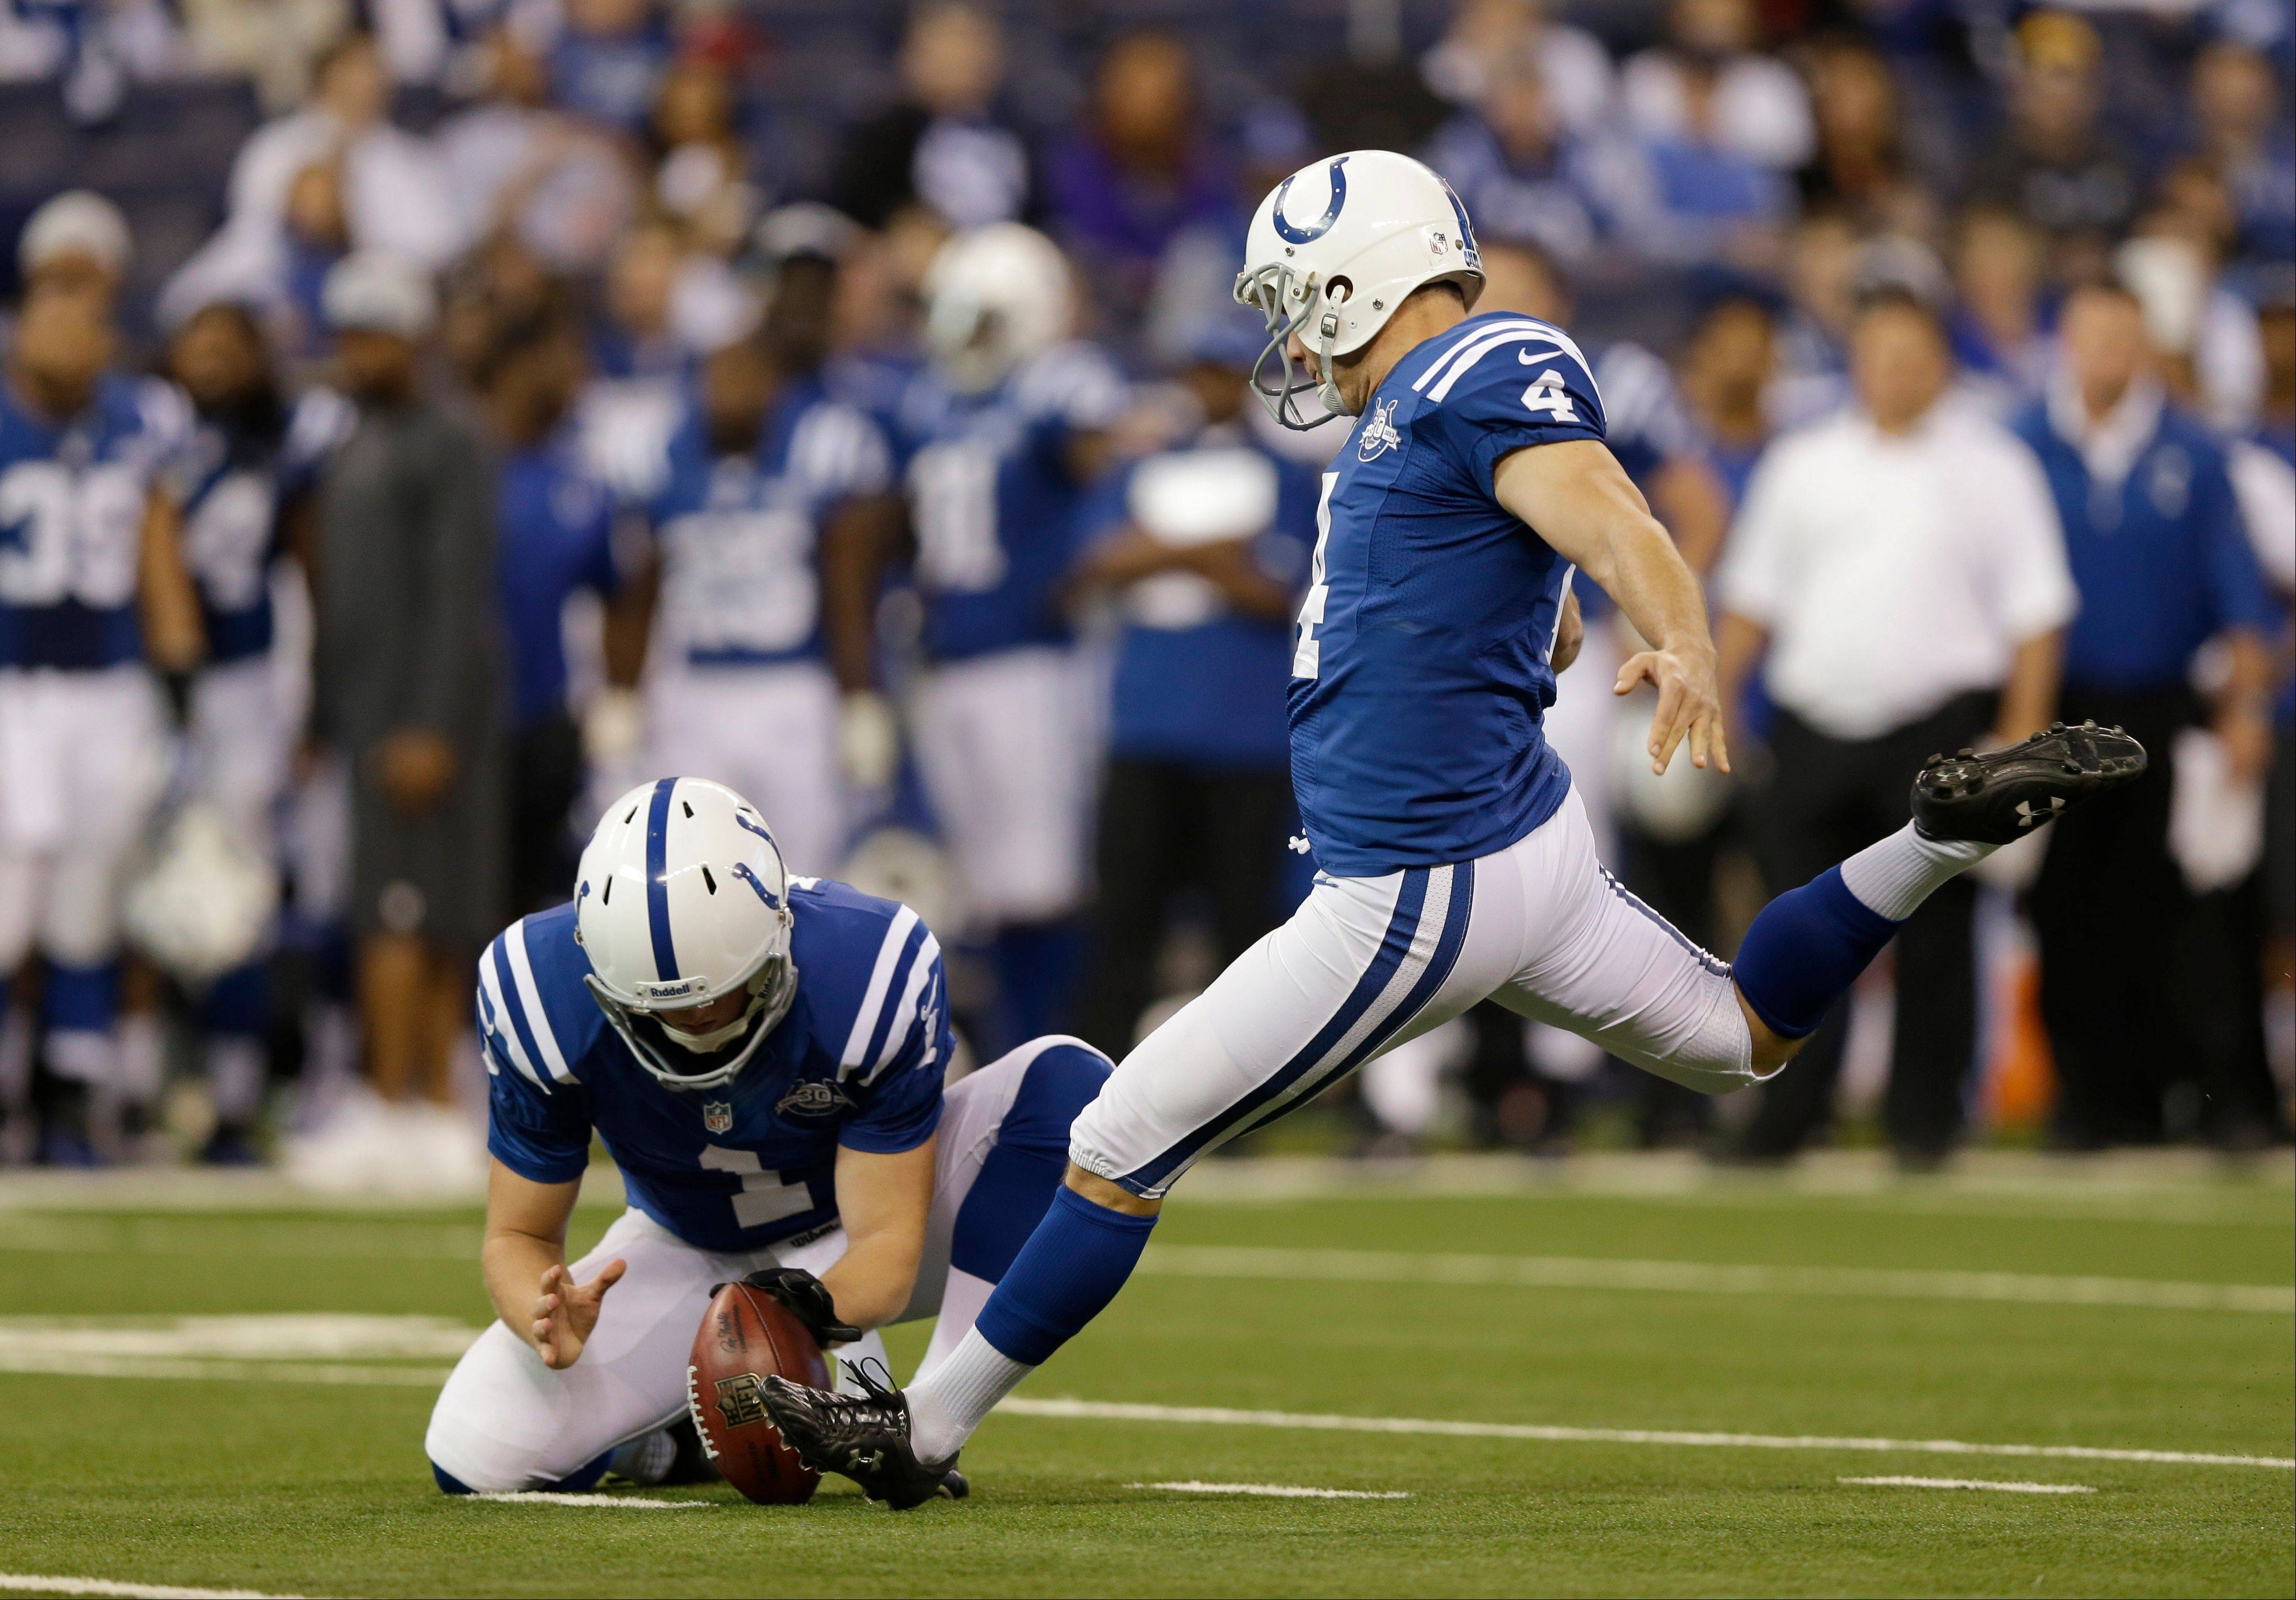 Indianapolis Colts� Adam Vinatieri (4) kicks a 37-yard field goal out of the hold of Pat McAfee during the first half against the Tennessee Titans Sunday, Dec. 1, 2013, in Indianapolis.